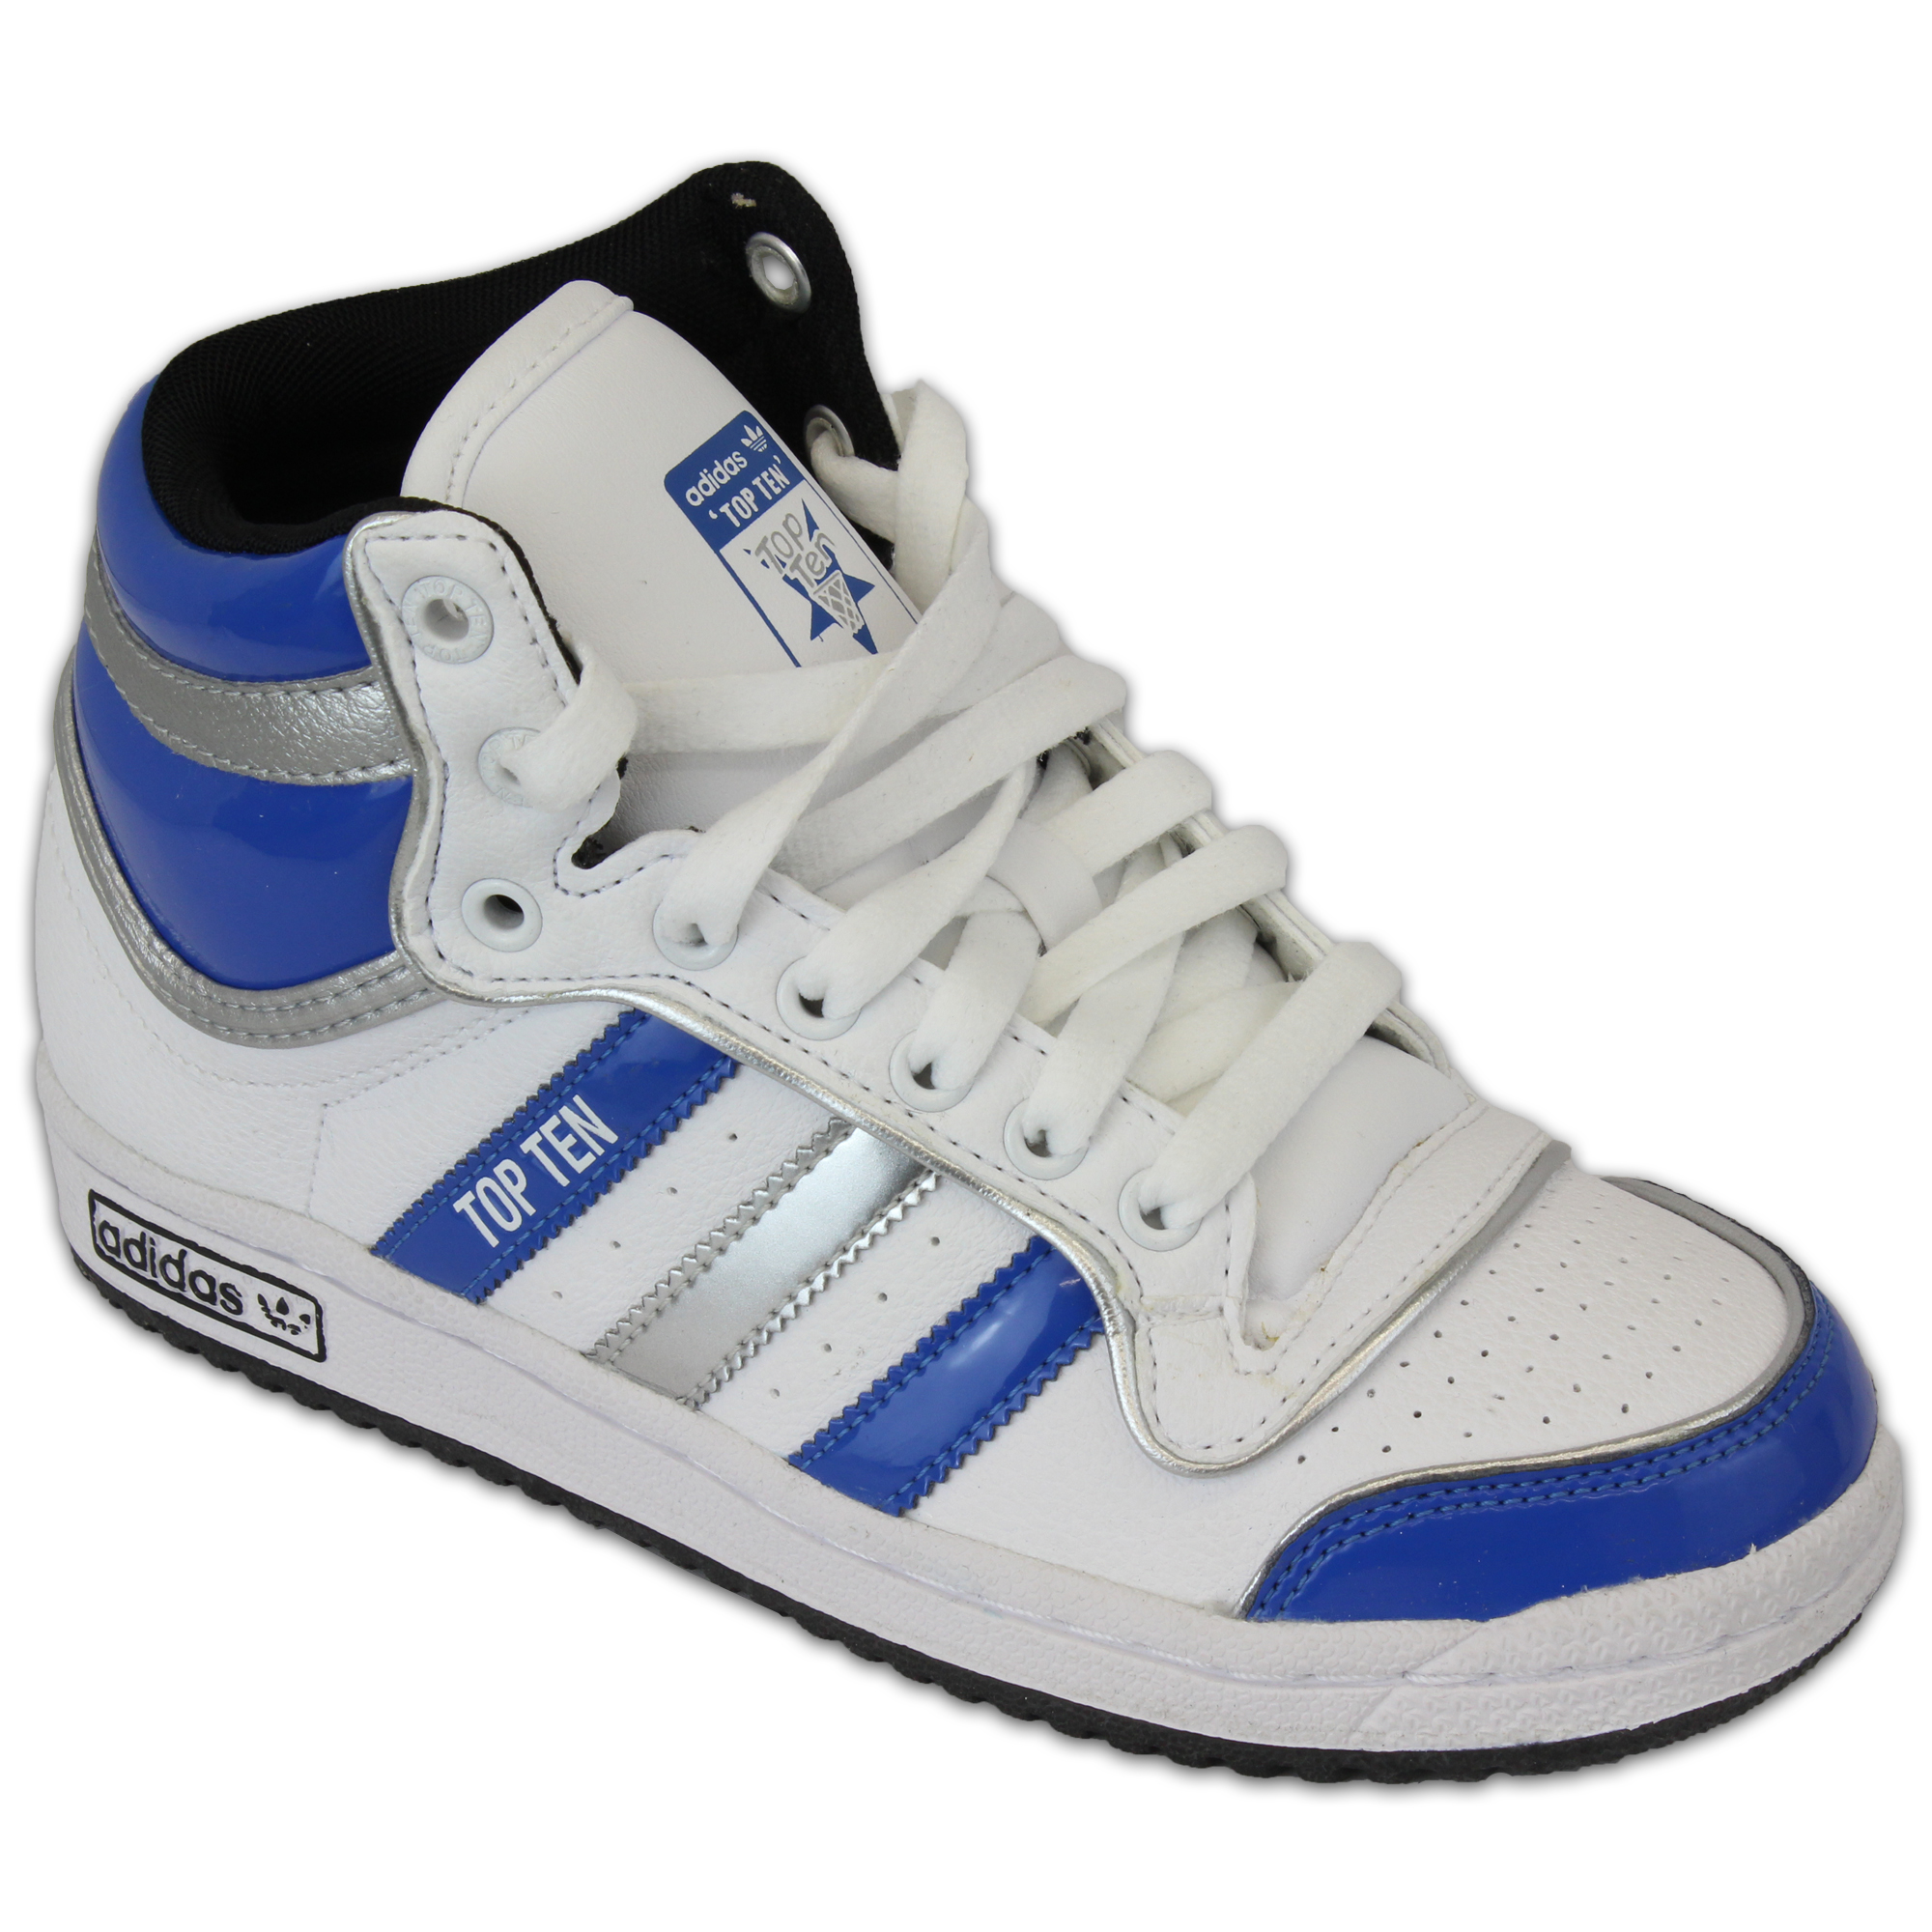 nuovo concetto 2492f 2048d Details about Kids Adidas Top Ten Leather Skate Sports Shoes Ankle High  Low- show original title